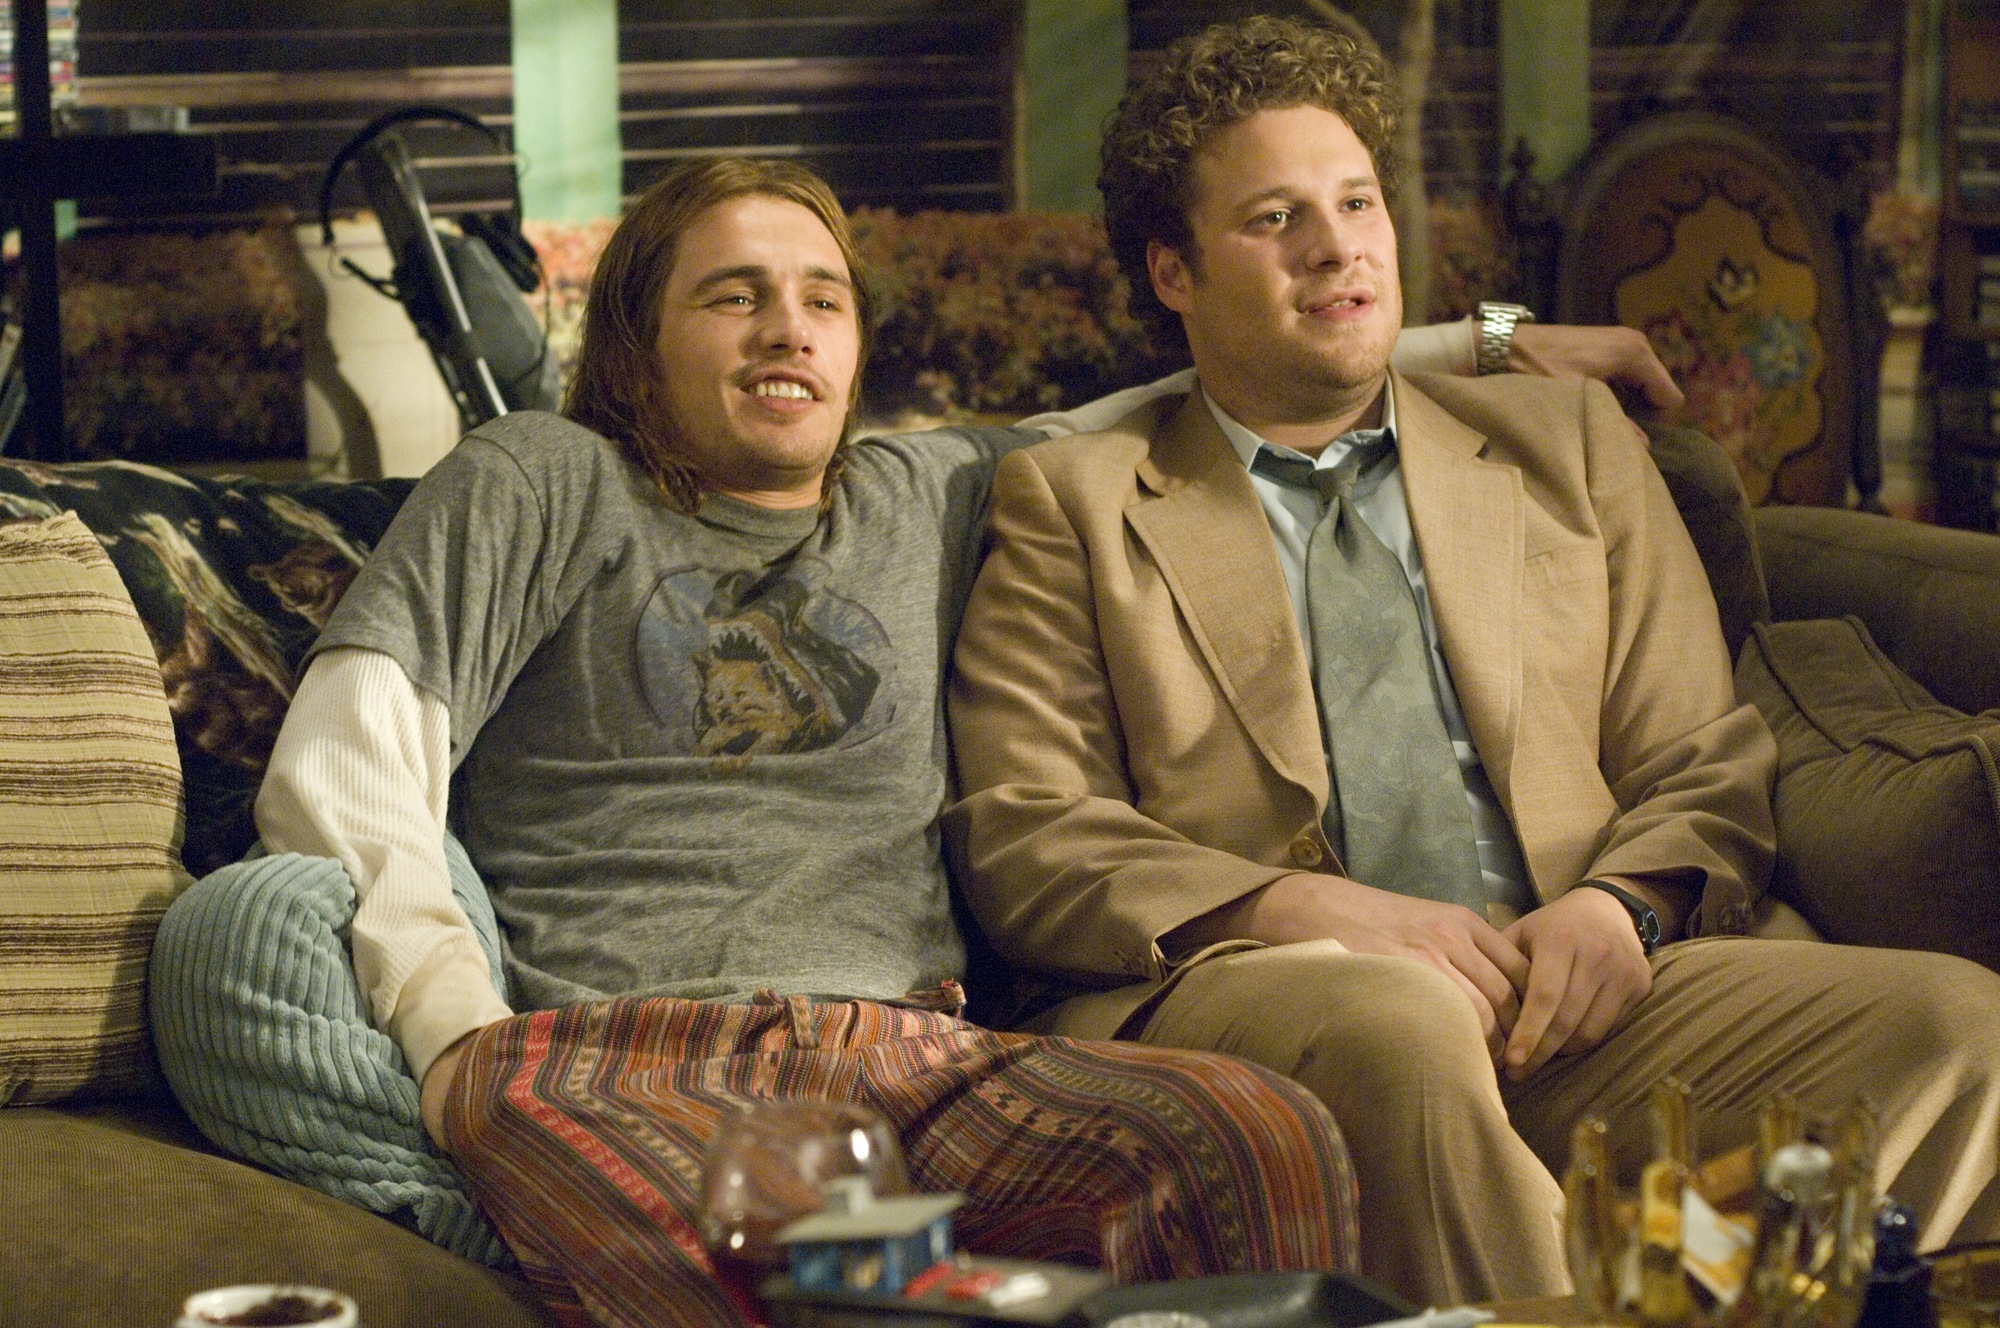 James Franco and Seth Rogan